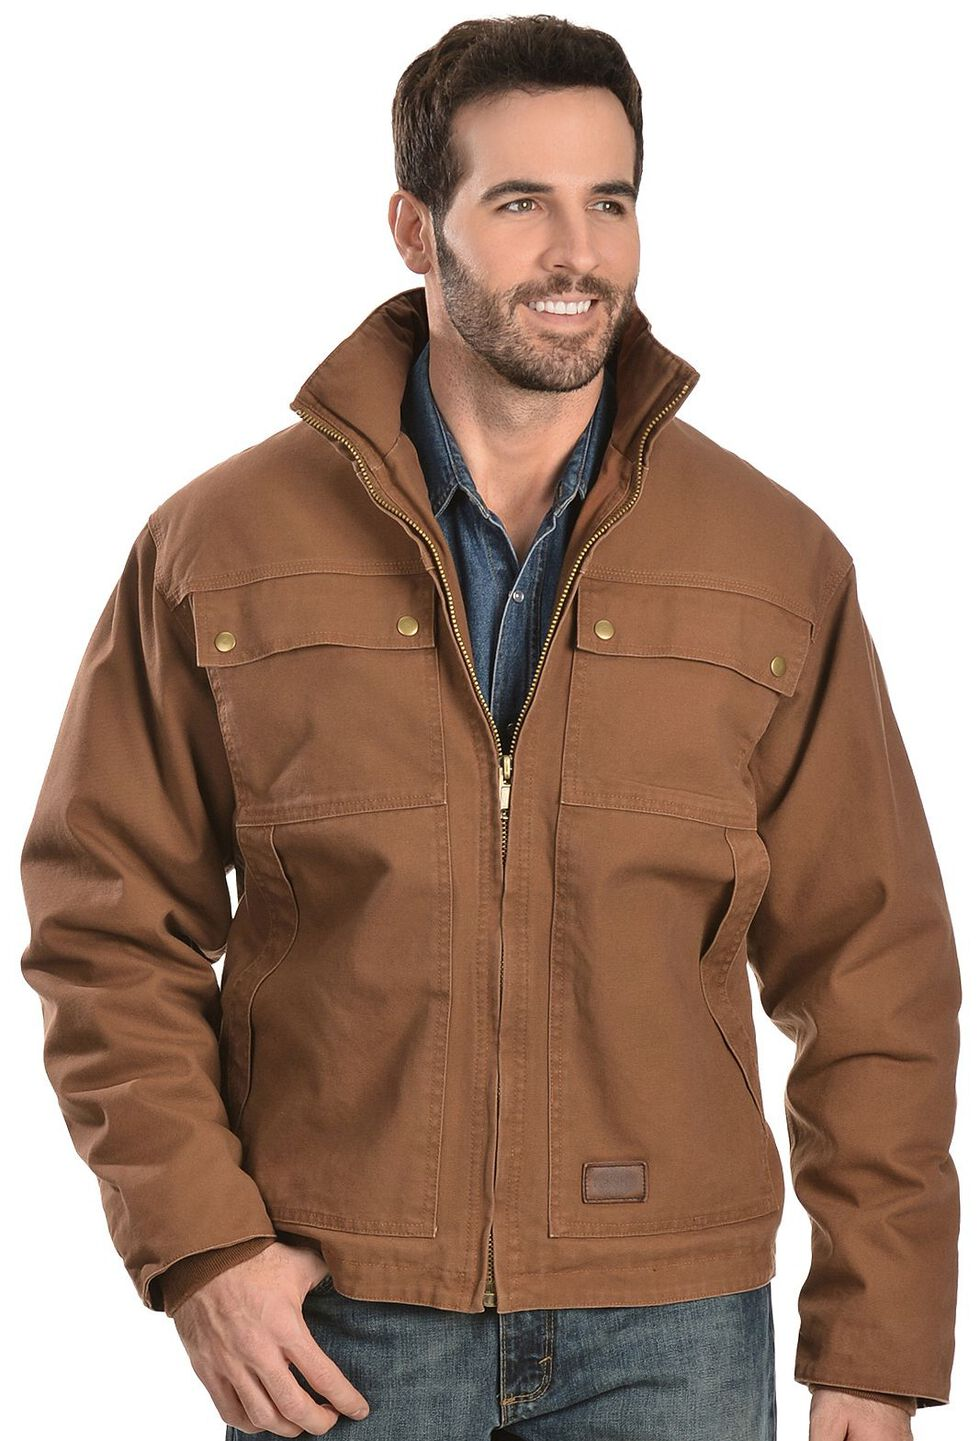 Exclusive Gibson Trading Co. Bonded Rancher Coat, Brown, hi-res